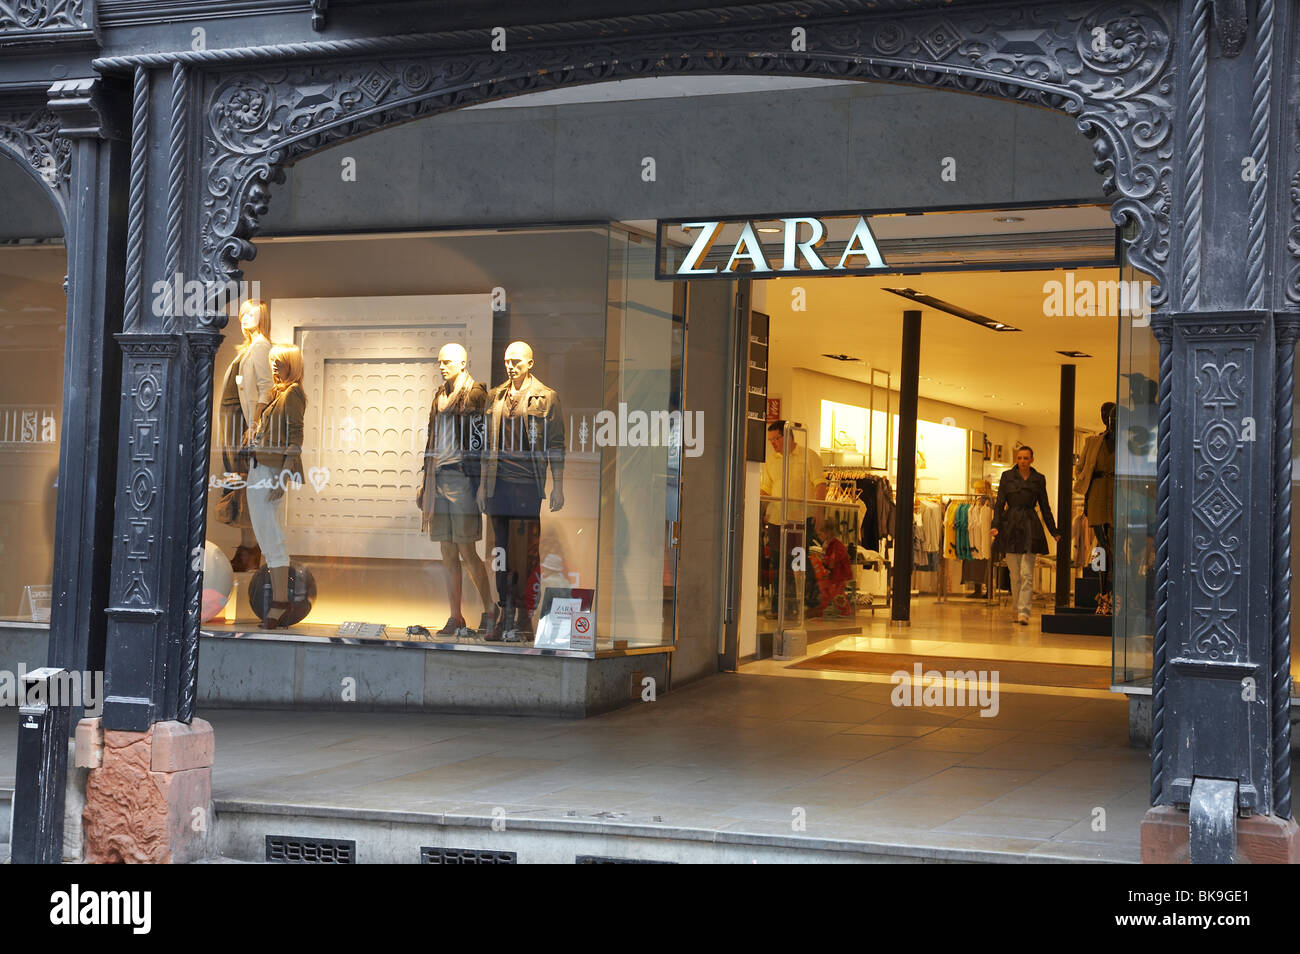 zara fashion shop in chester uk stock photo royalty free image 29099337 alamy. Black Bedroom Furniture Sets. Home Design Ideas